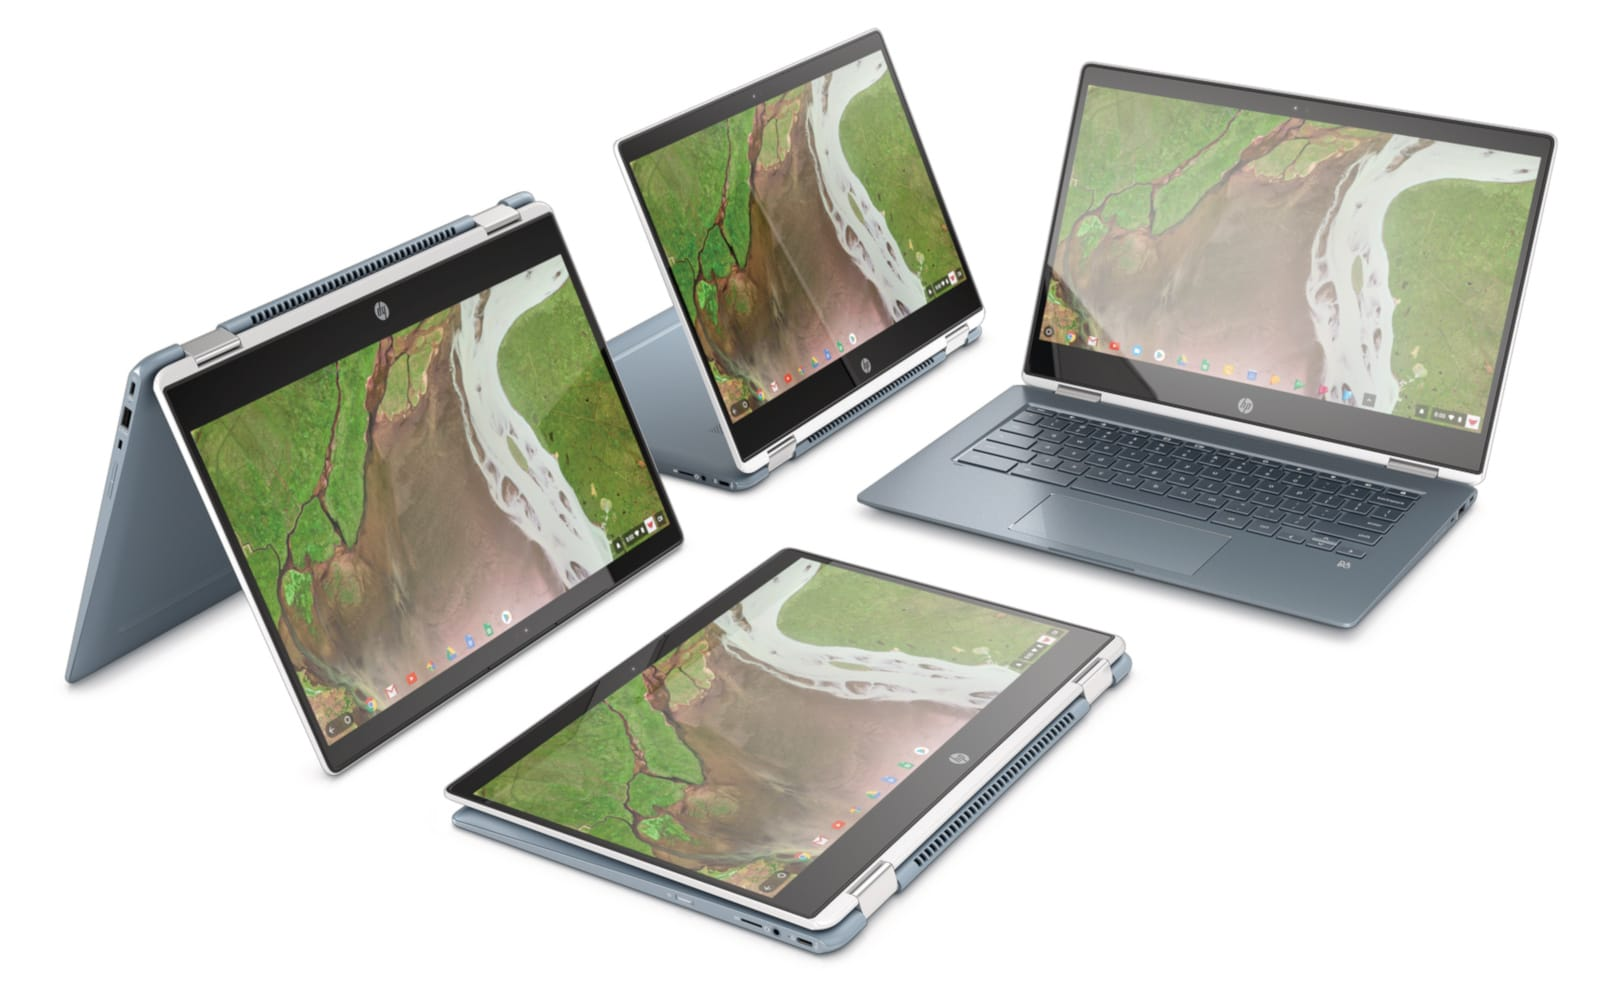 HP's x360 14 is its thinnest Chromebook convertible yet